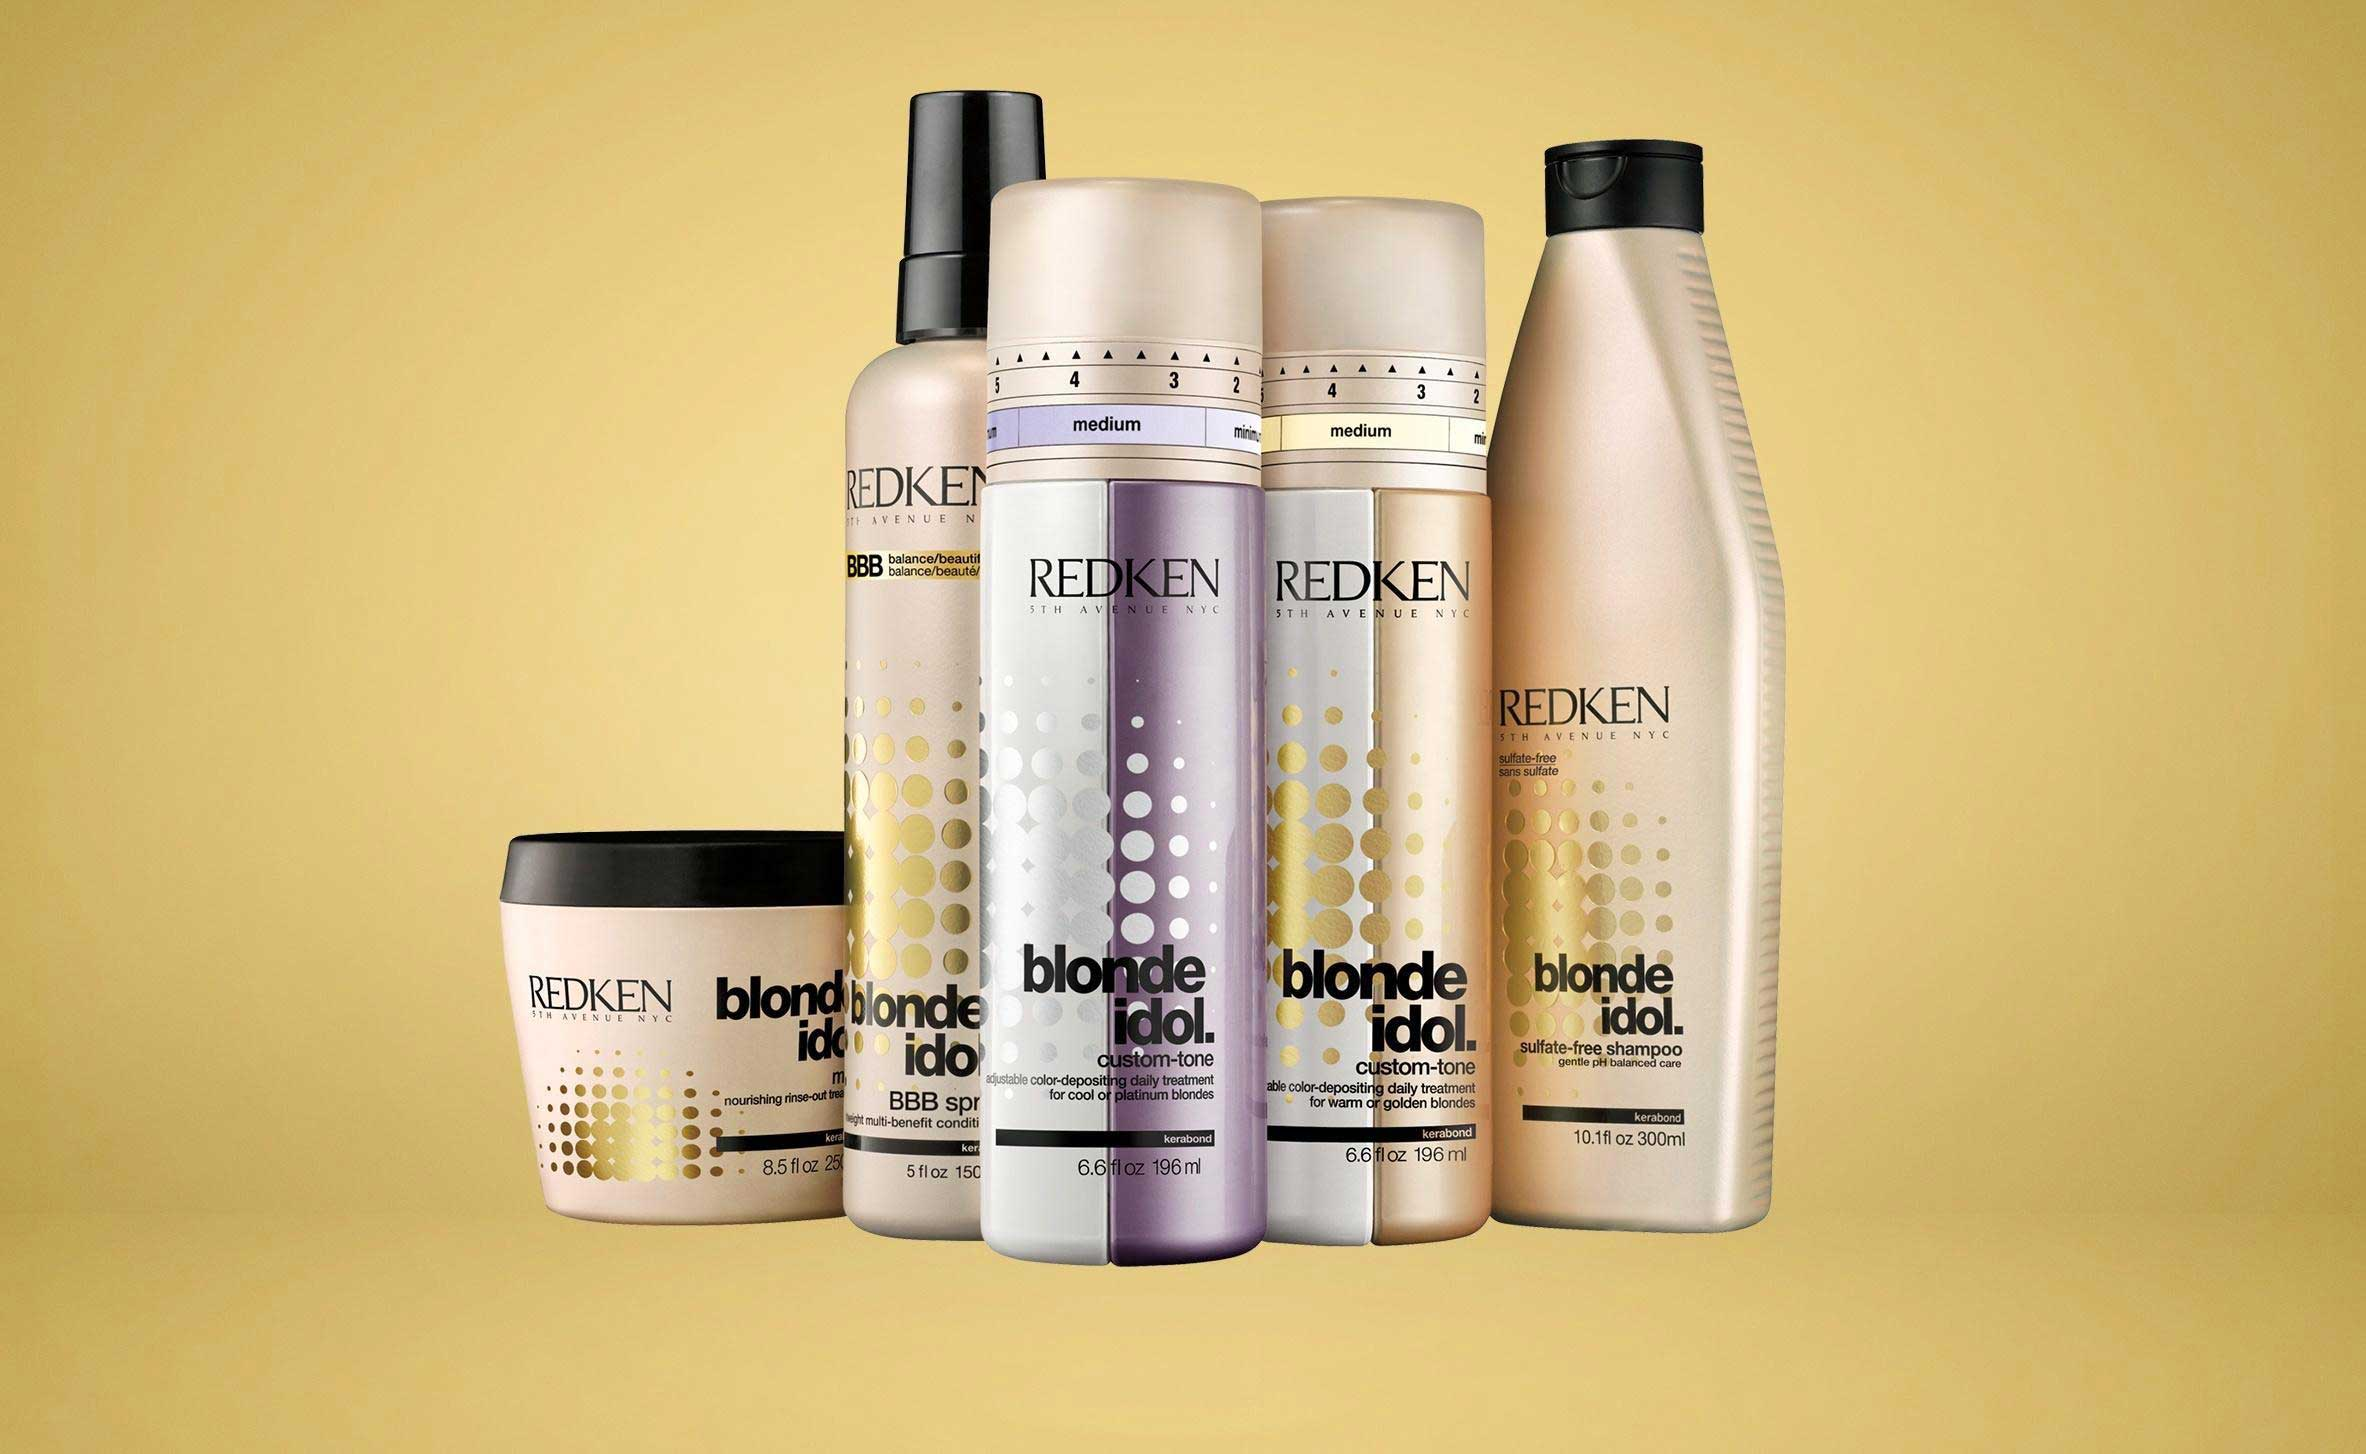 Blonde idol blonde colored hair haircare products redken for Salon redken